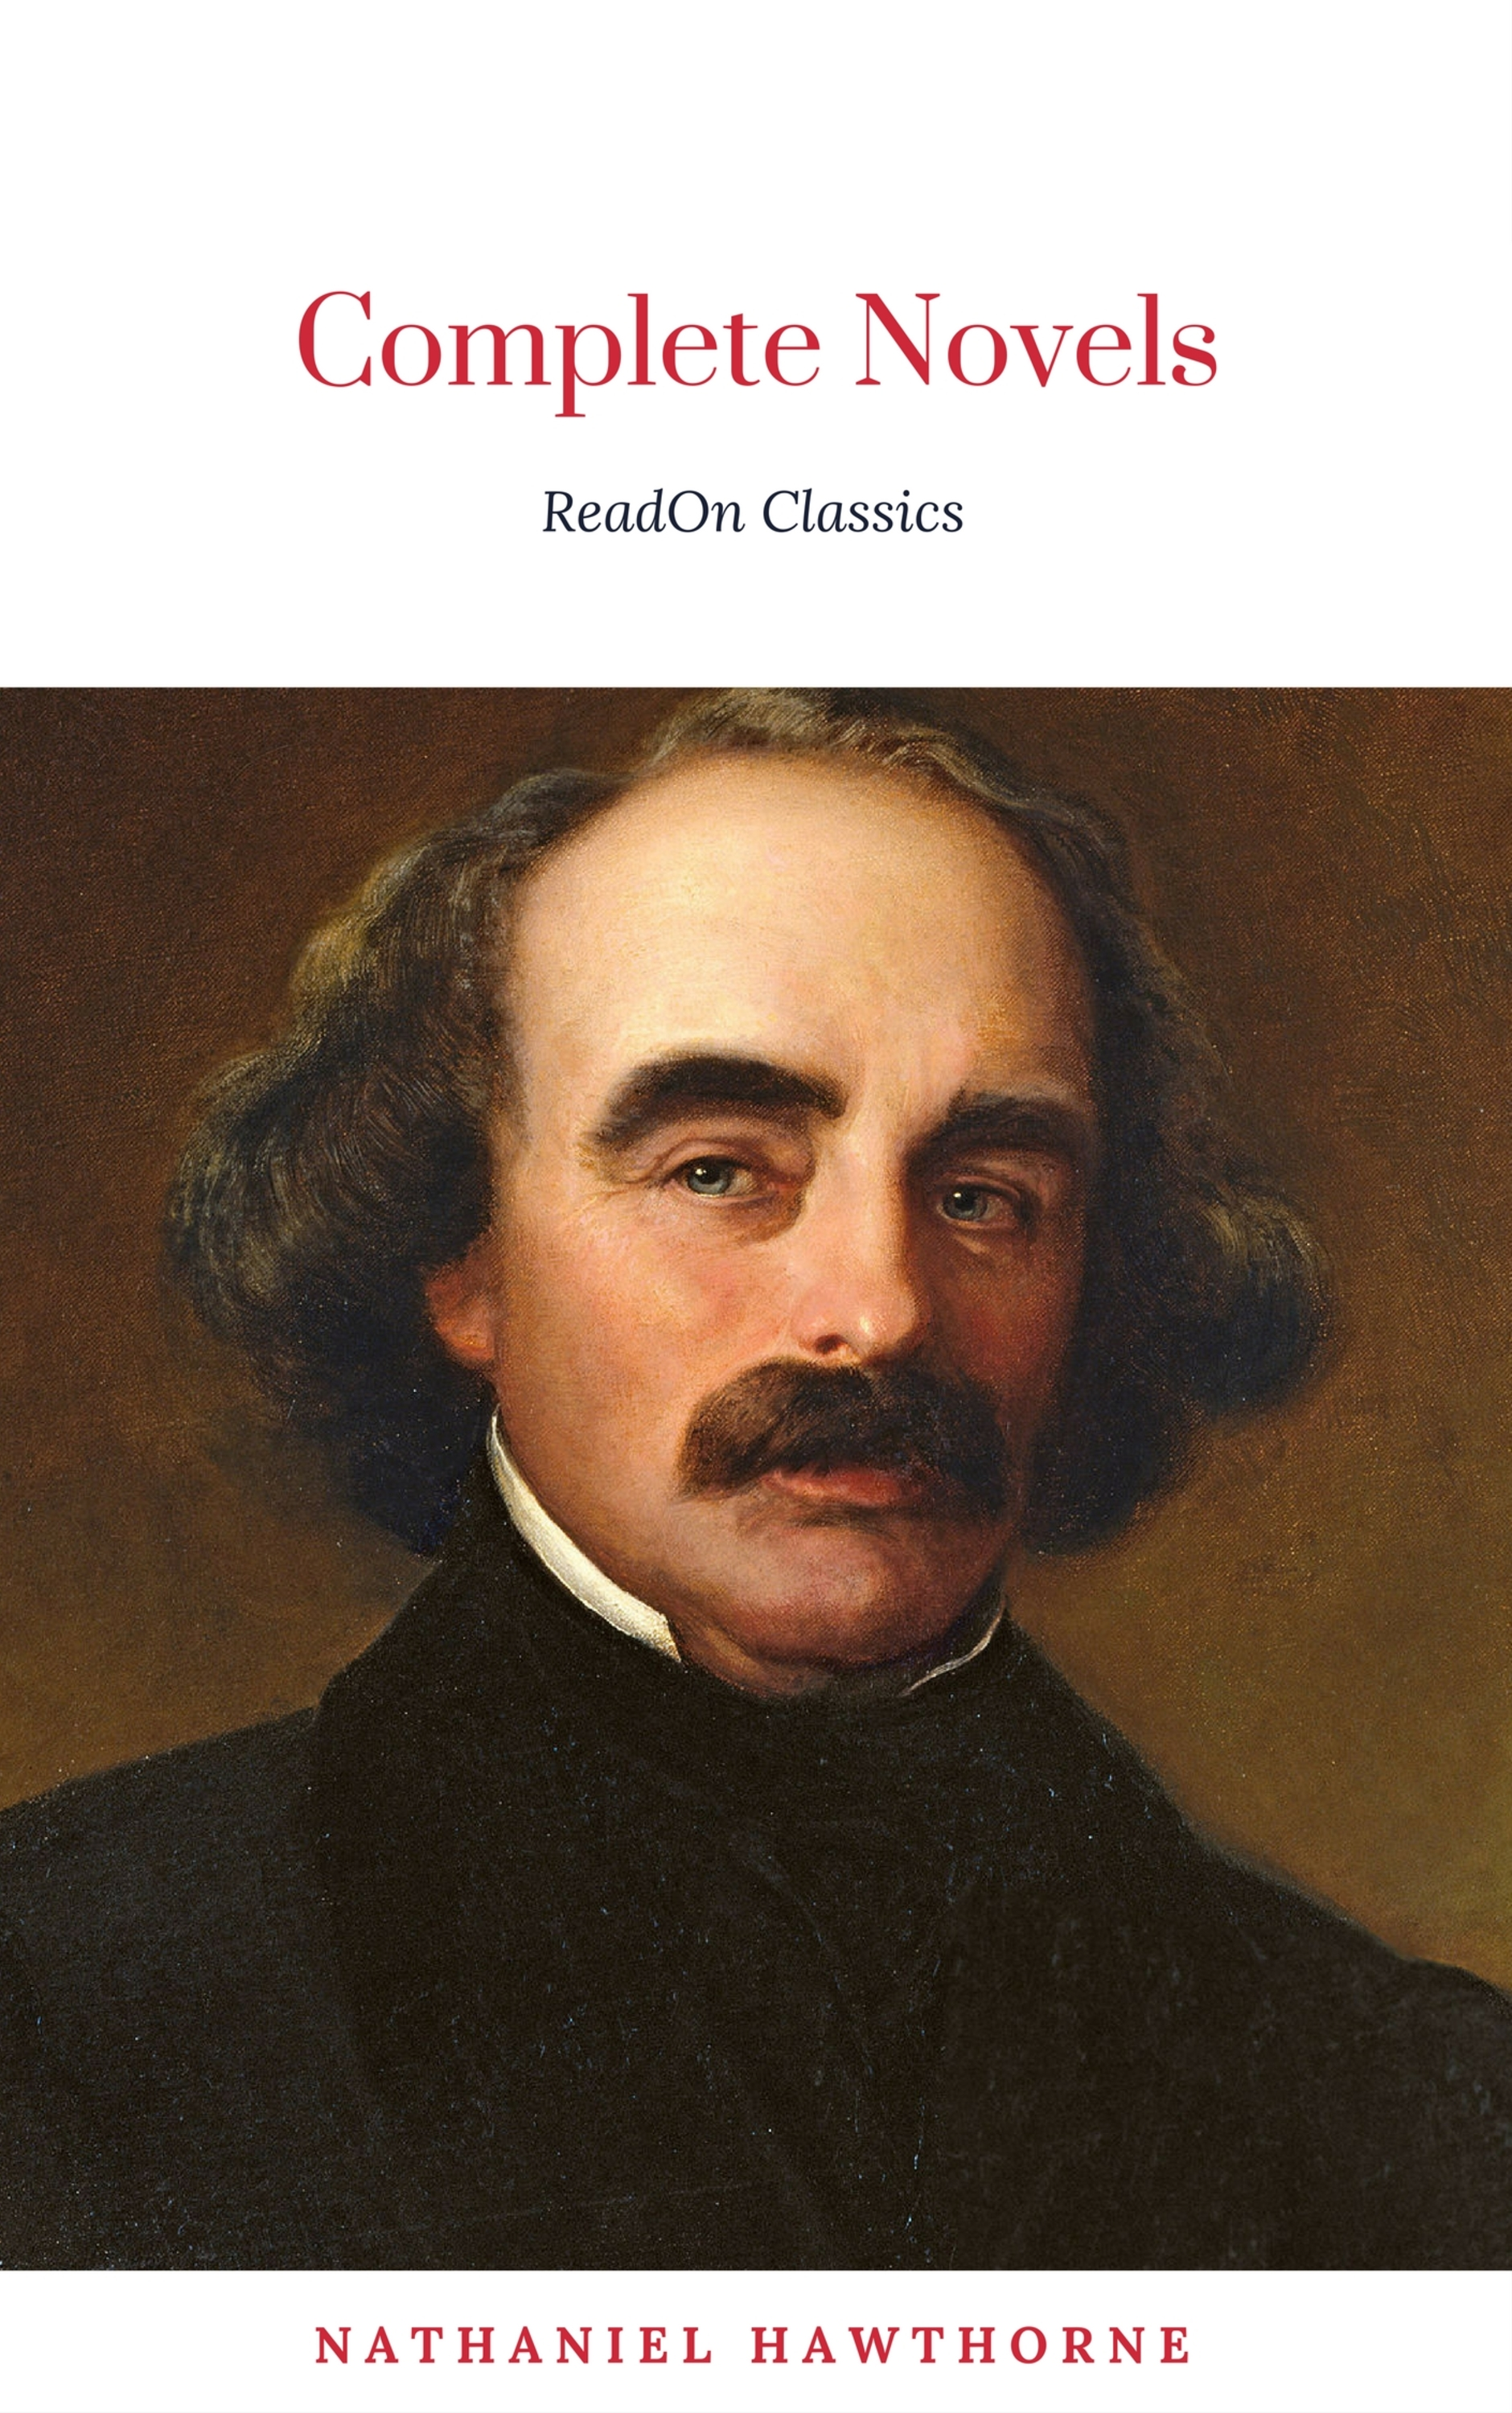 ReadOn Classics The Complete Works of Nathaniel Hawthorne: Novels, Short Stories, Poetry, Essays, Letters and Memoirs (Illustrated Edition): The Scarlet Letter with its ... Romance, Tanglewood Tales, Birthmark, Ghost